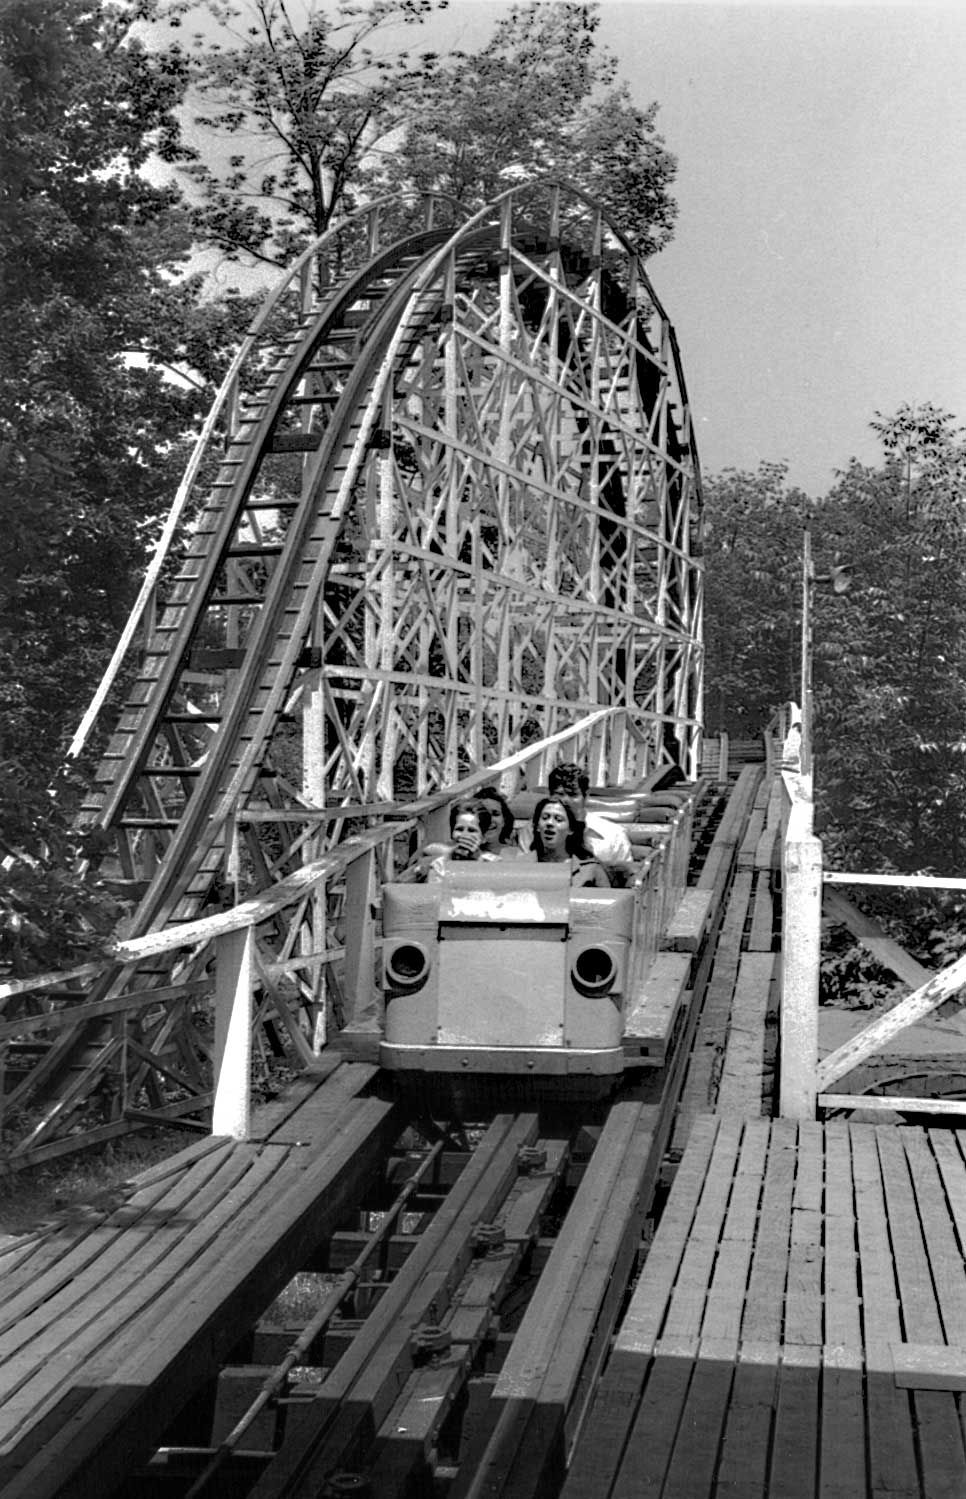 Lake Lansing Amusement Park Roller Coaster In 1970s Before